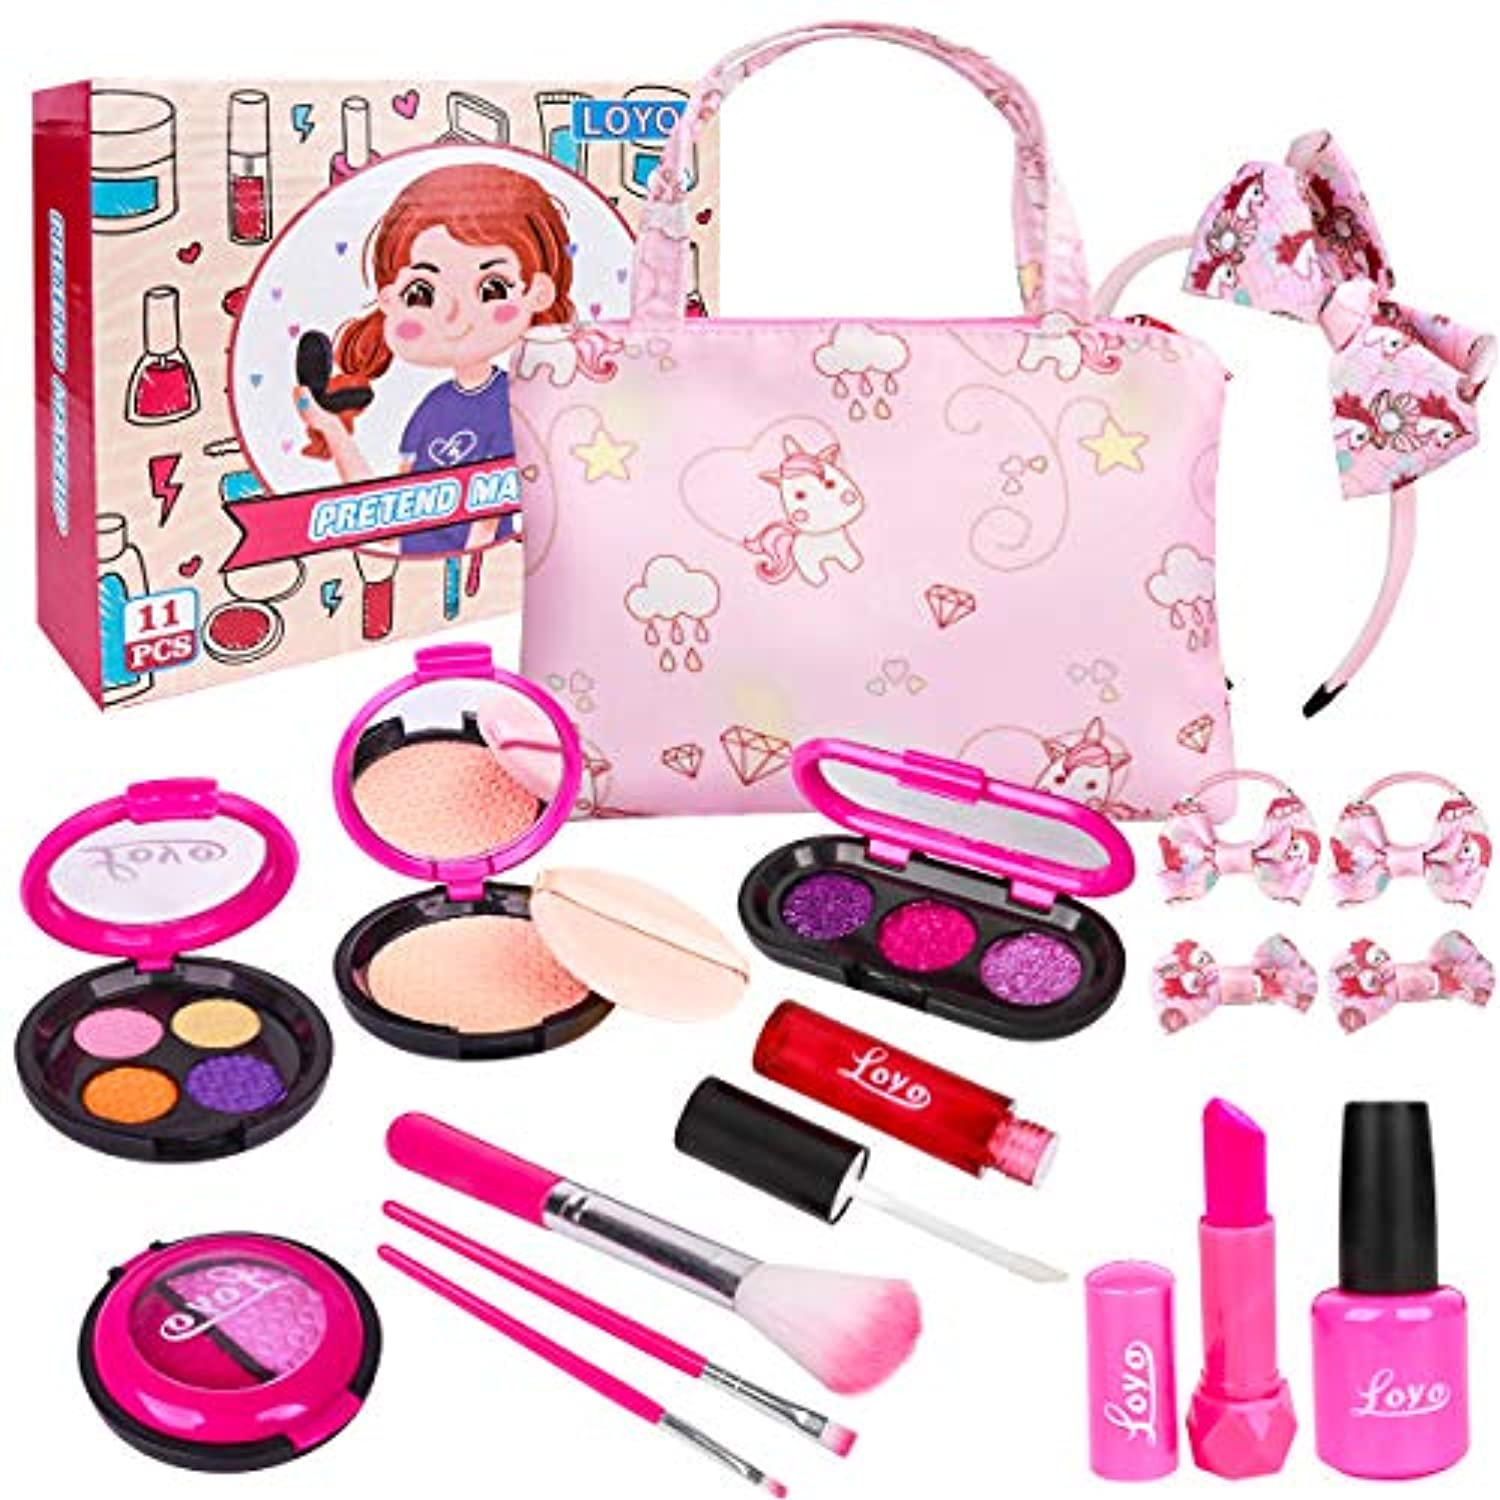 Classier: Buy LOYO LOYO Girls Pretend Play Makeup Sets Fake Make Up Kits with Cosmetic Bag for Little Girls Birthday Christmas, Toy Makeup Set for Toddler Girls Age 2, 3, 4, 5 (Not Real Makeup)